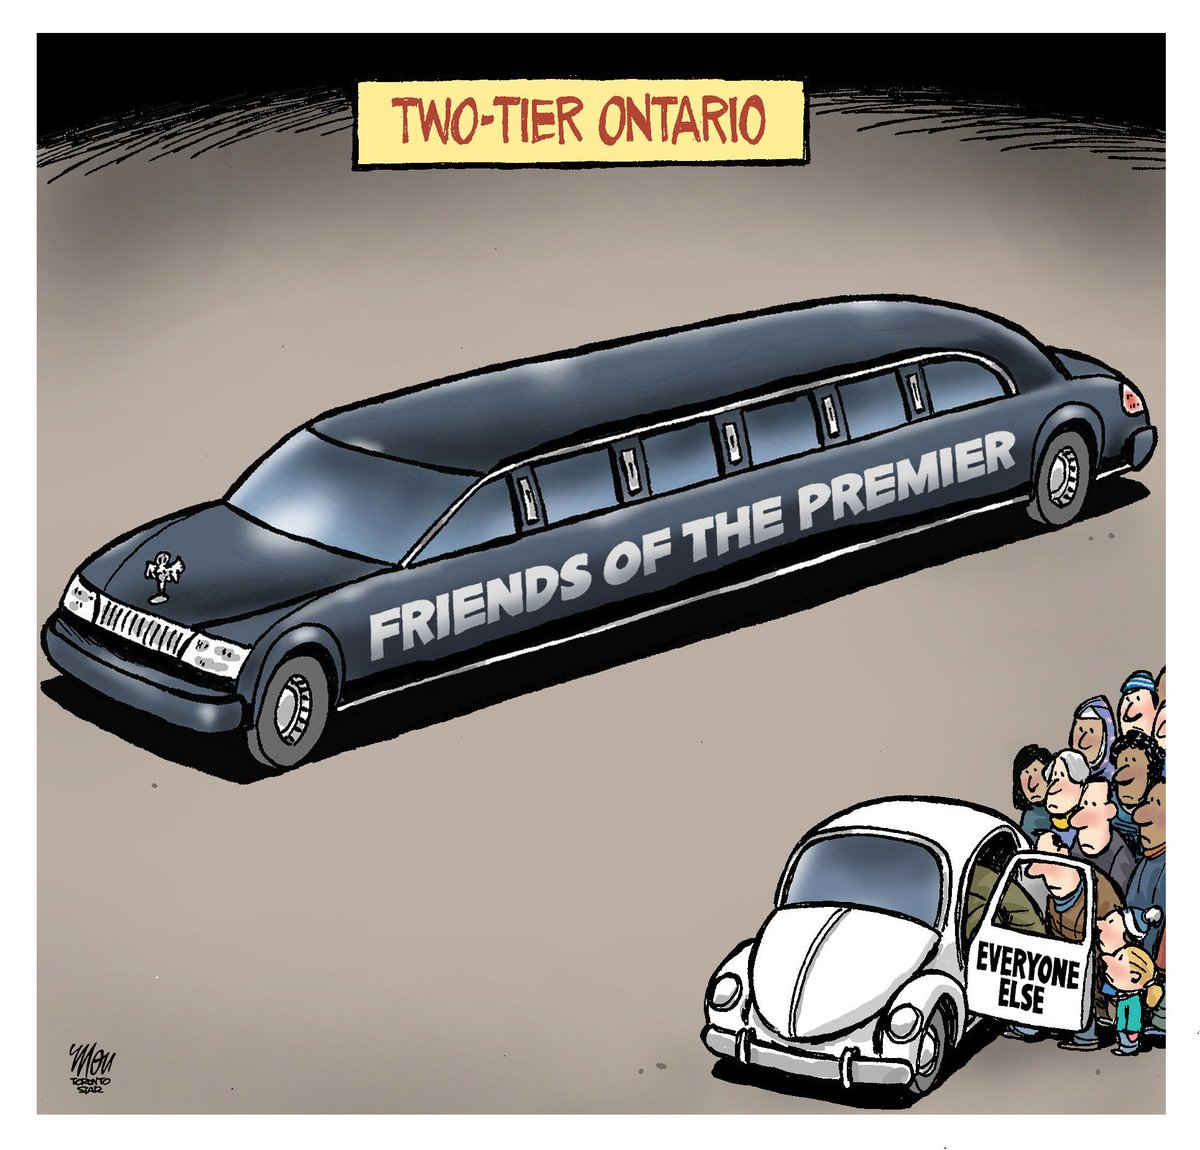 Here's today's #DougFord cartoon in @TorontoStar #onpoli